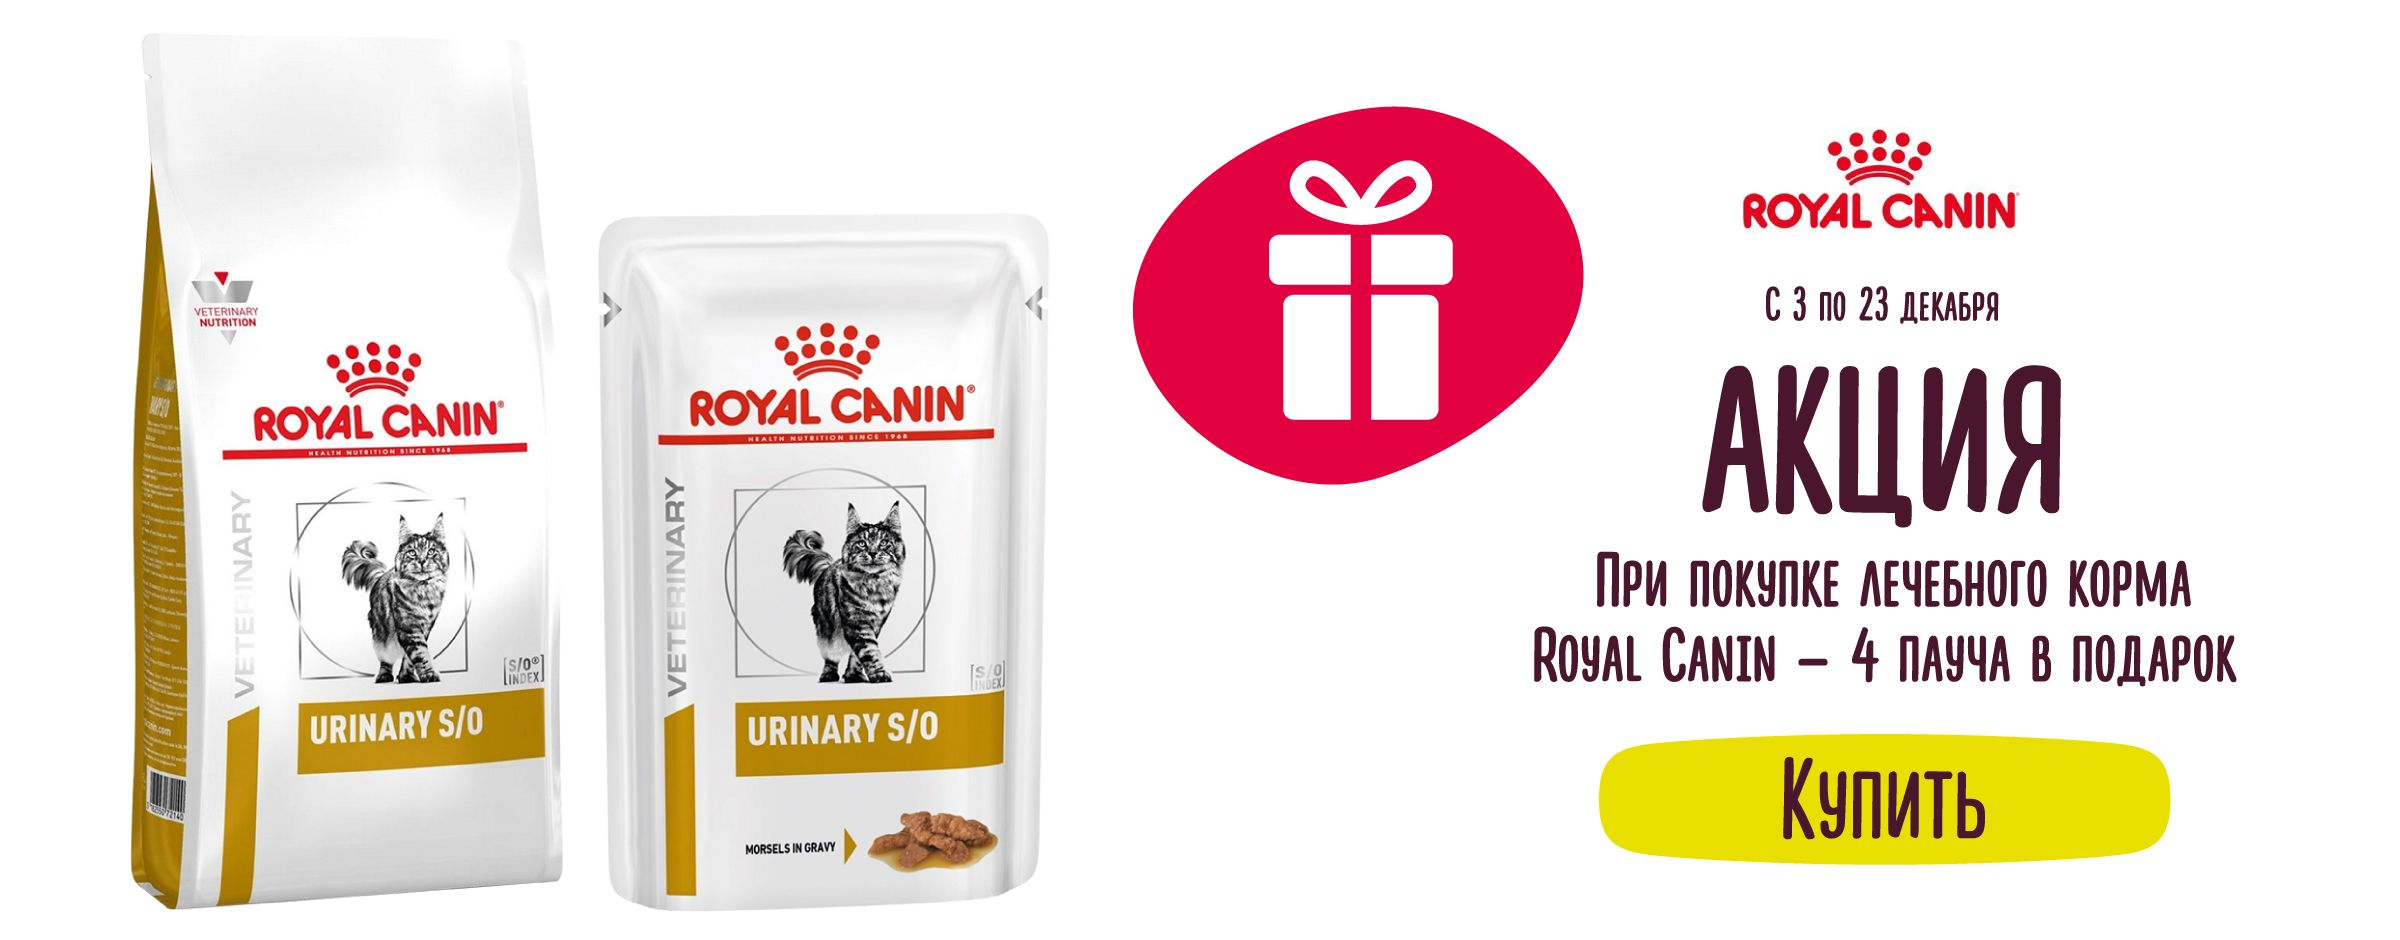 Royal Canin_2== Листовка24